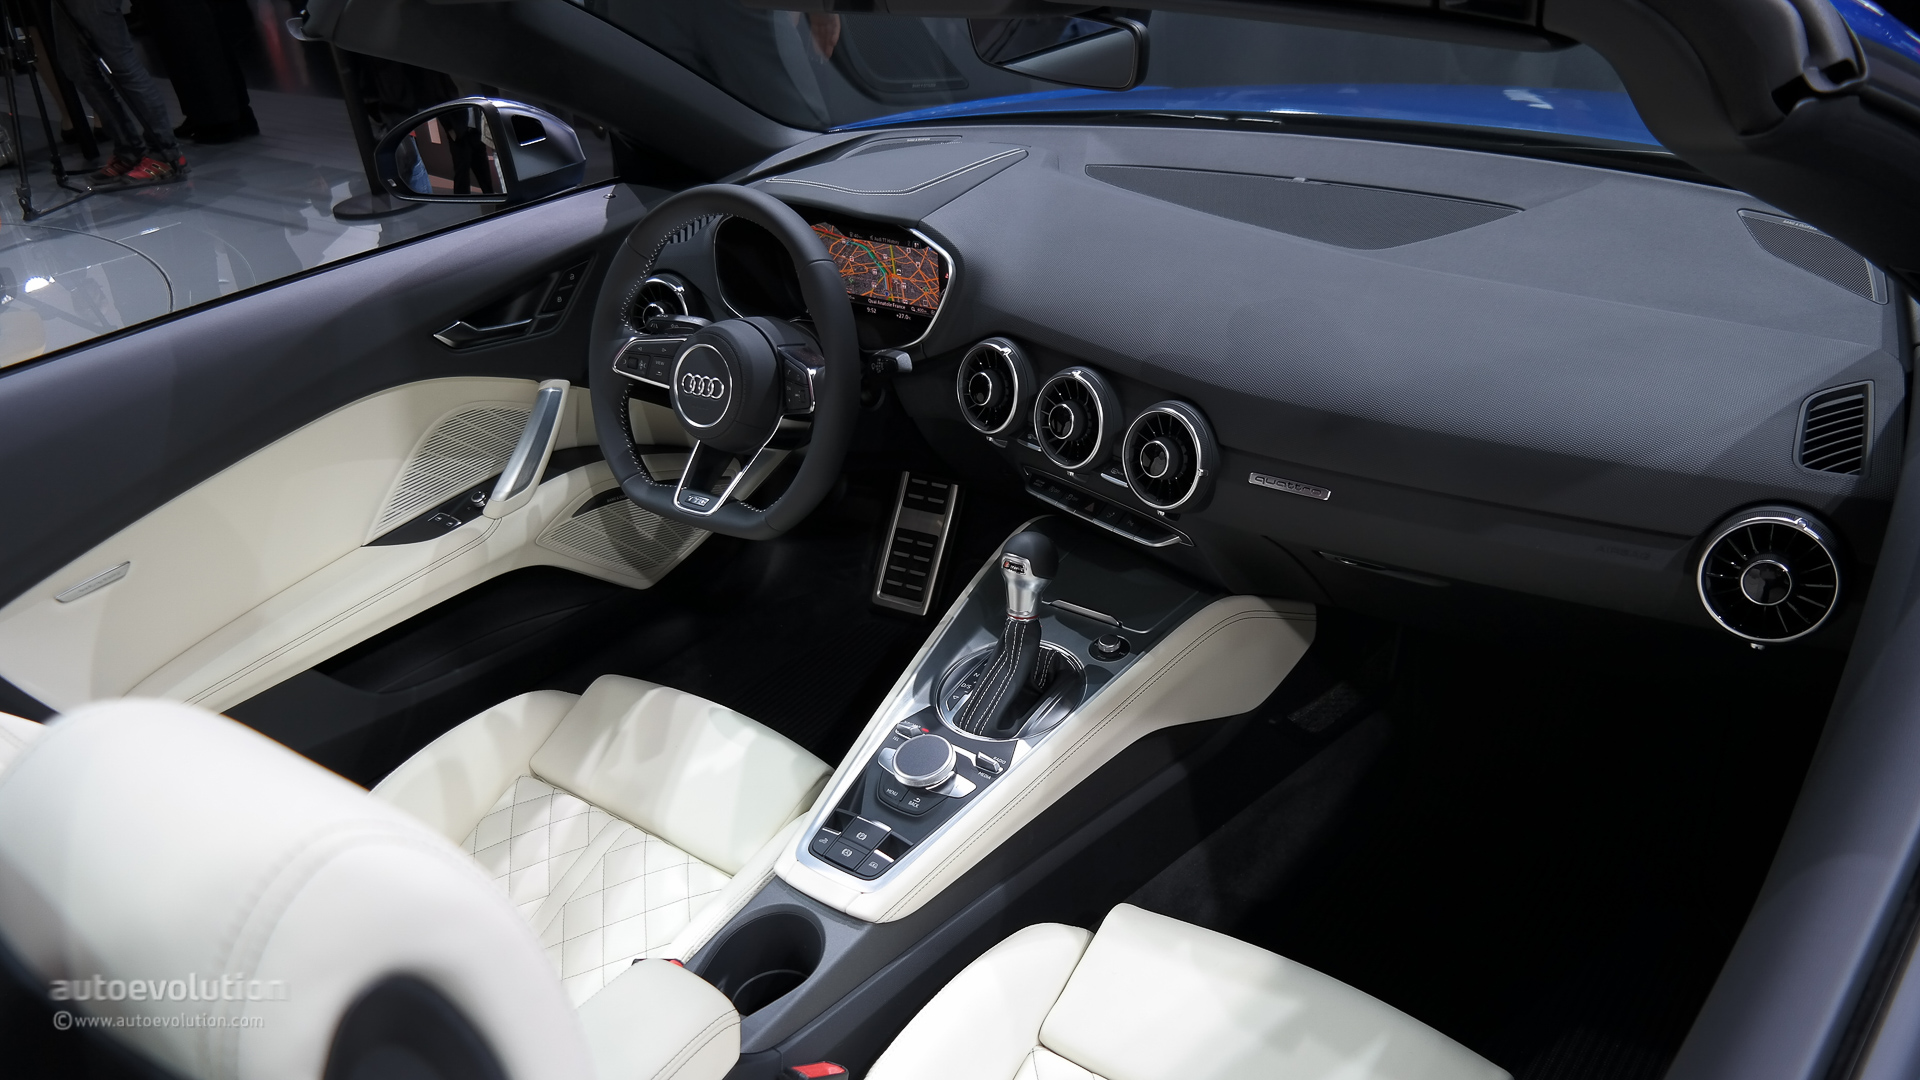 All-New Audi TT and TTS Roadster Mark World Premiere in Paris [Live Photos] - autoevolution